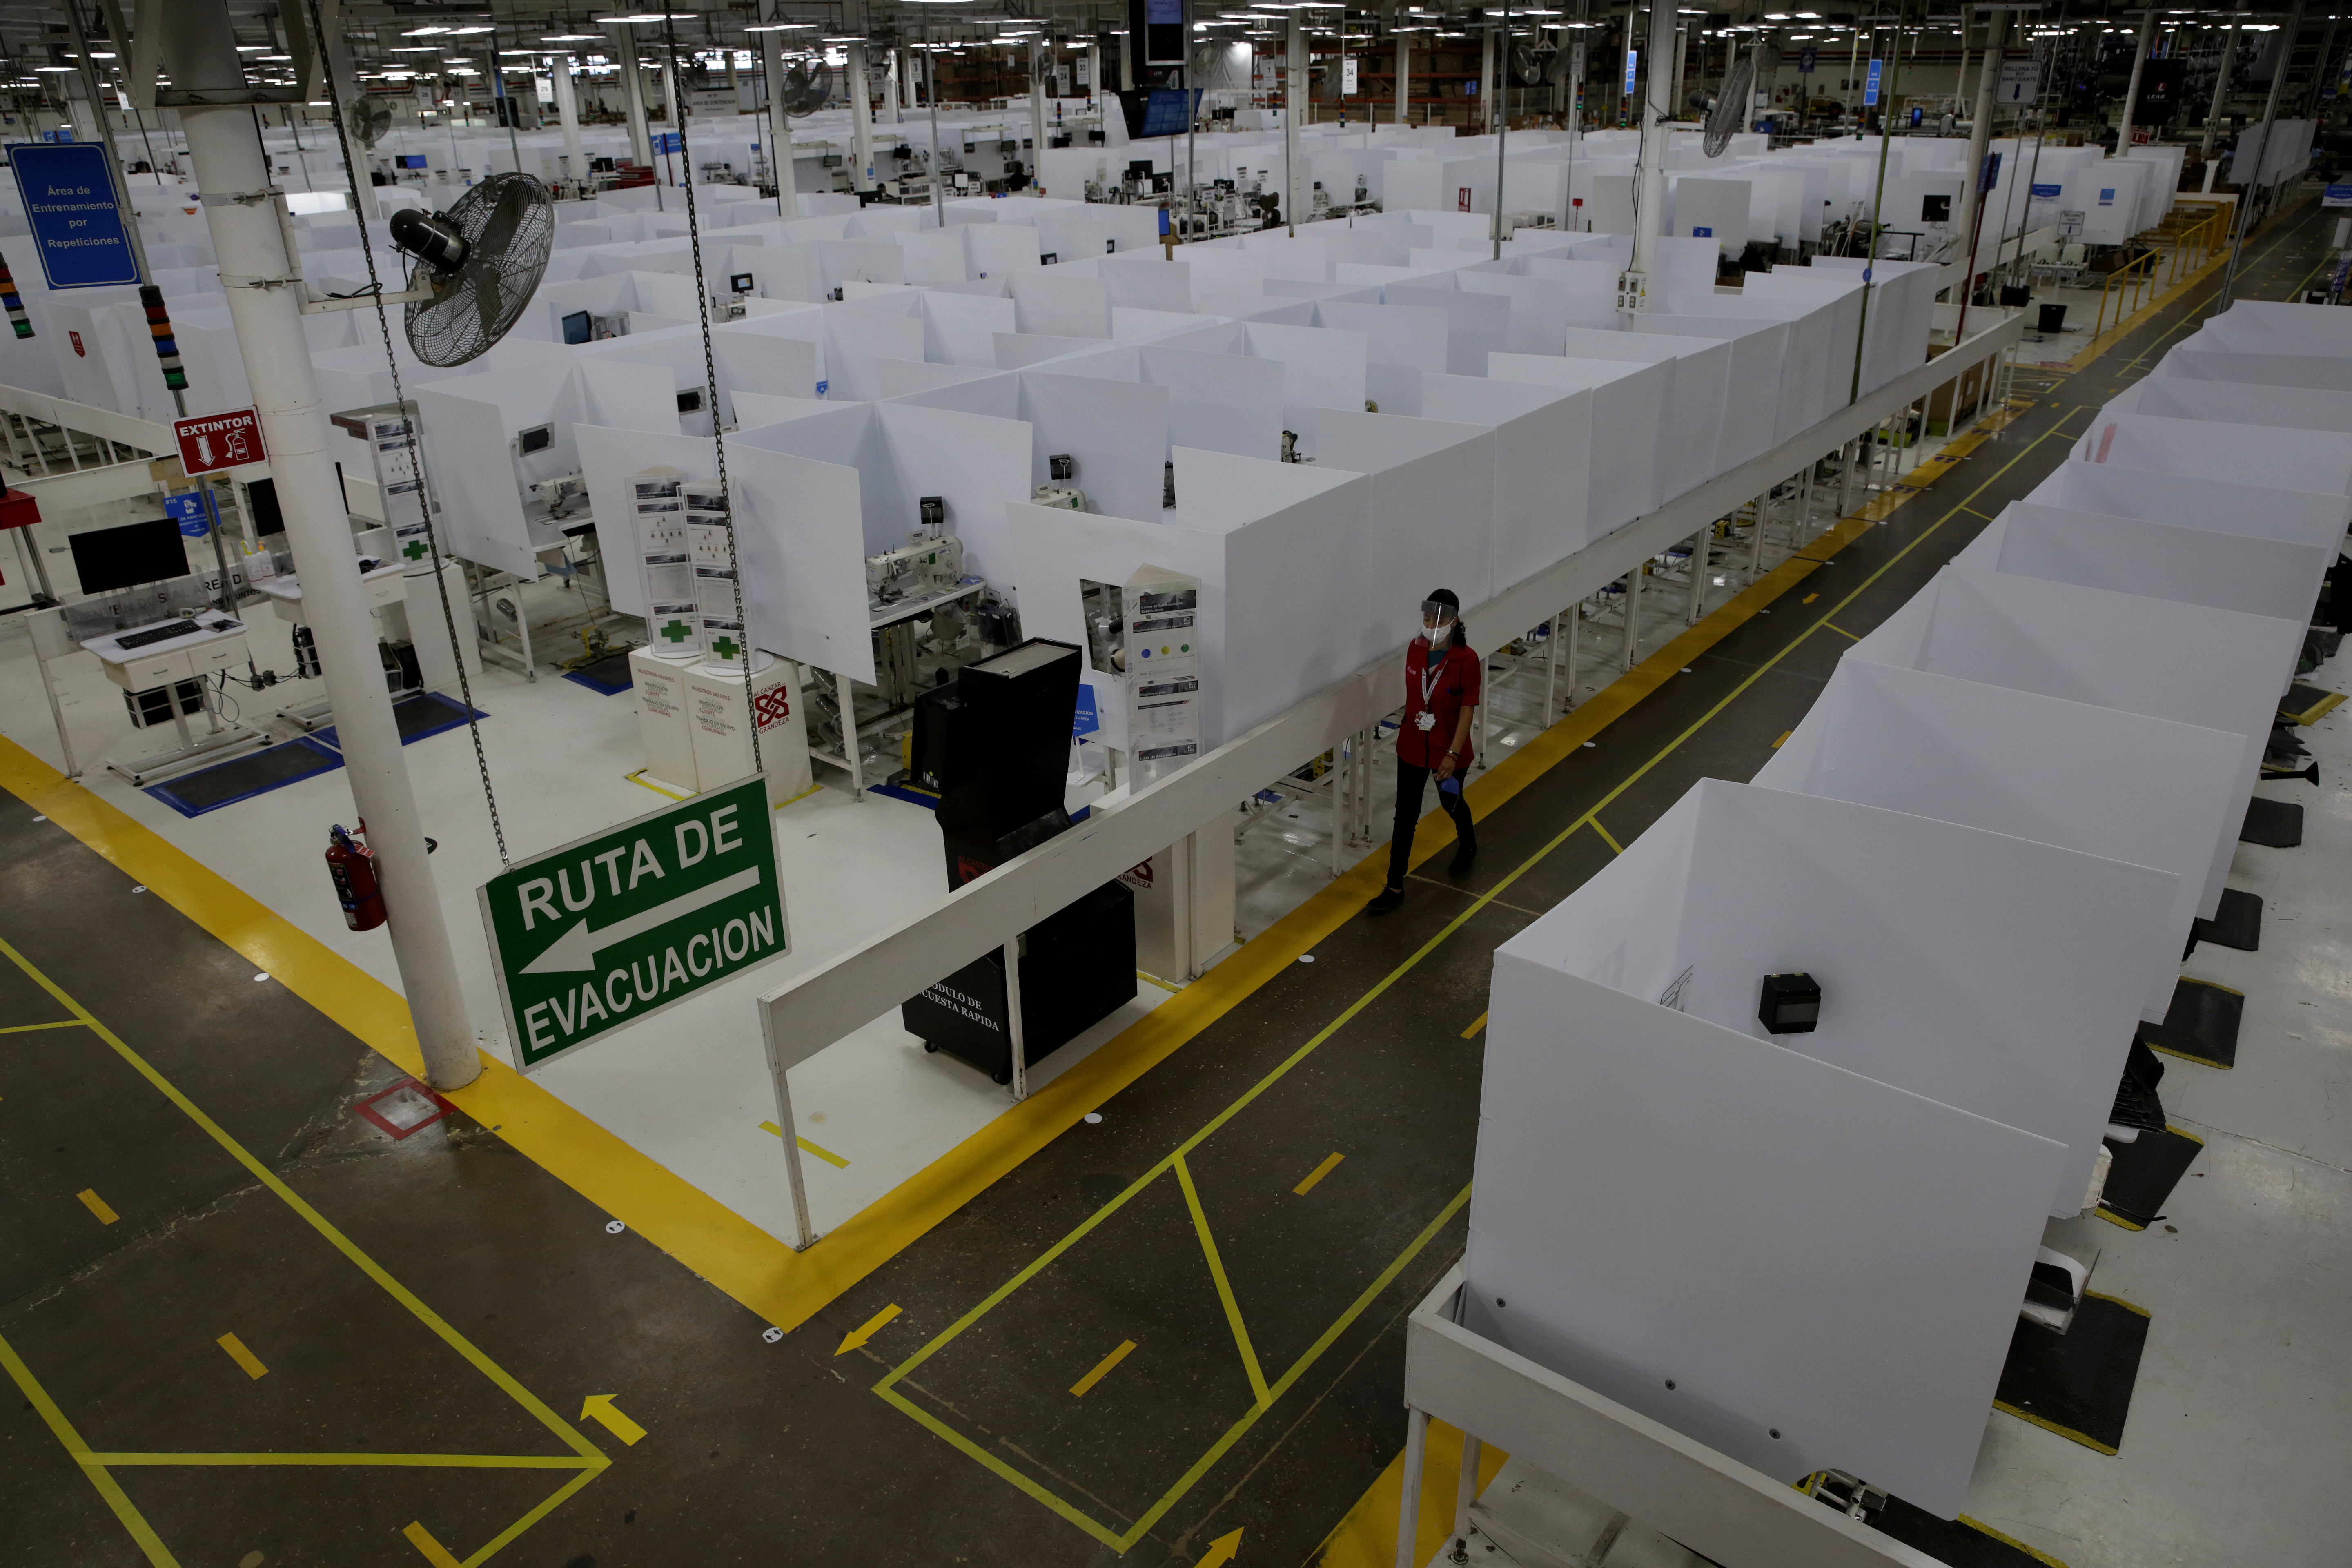 An employee of U.S. auto part maker Lear Corp., wearing a protective face mask, walks past work cubicles furnished with tall dividers as part of the new security measures at the plant, before resuming operations during the coronavirus disease (COVID-19) outbreak, in Ciudad Juarez, Mexico, May 27, 2020. REUTERS/Jose Luis Gonzalez